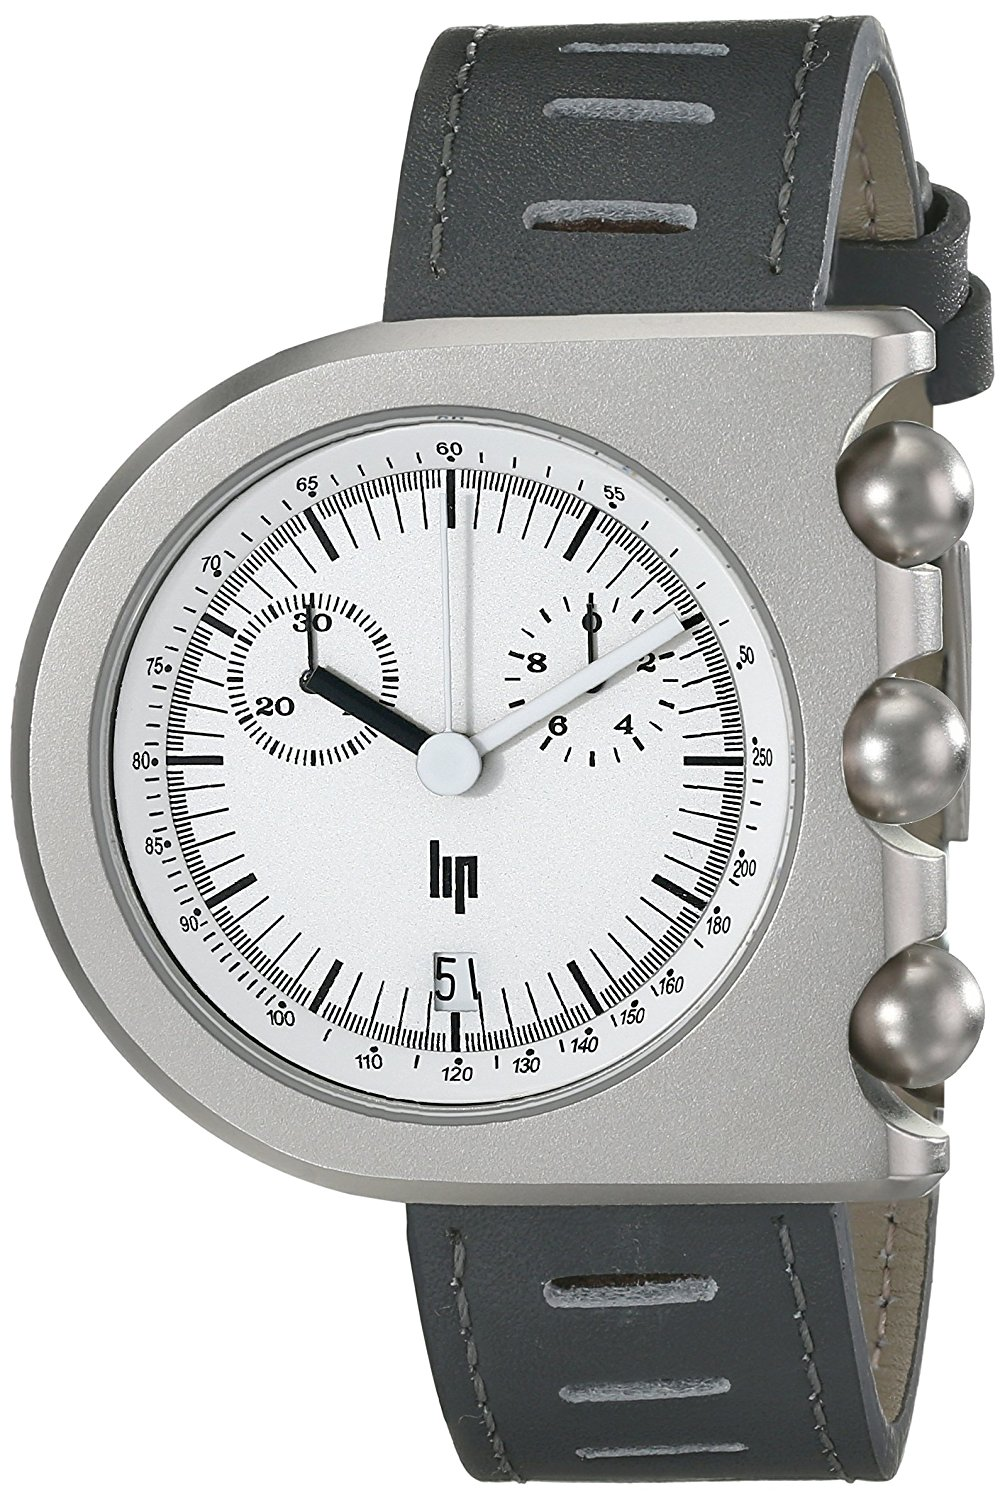 Lip Men's 1892522 Mach 2000 Chronograph Analog Display Swiss Quartz Grey Watch